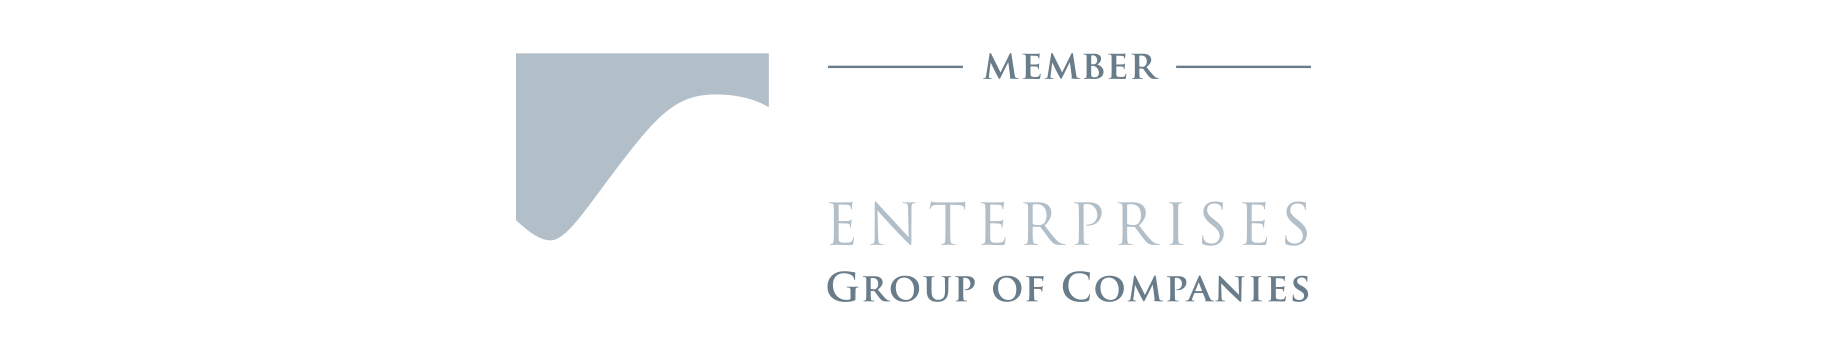 Member-Salcido-Group-Horizontal-for-Web.png